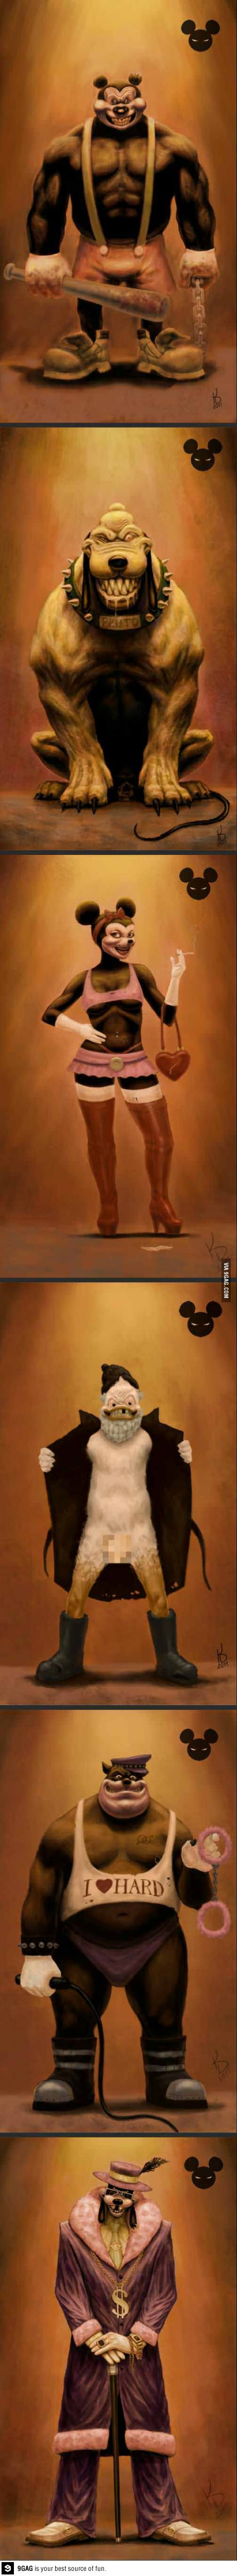 Funny Pictures Disney Characters Were Bad